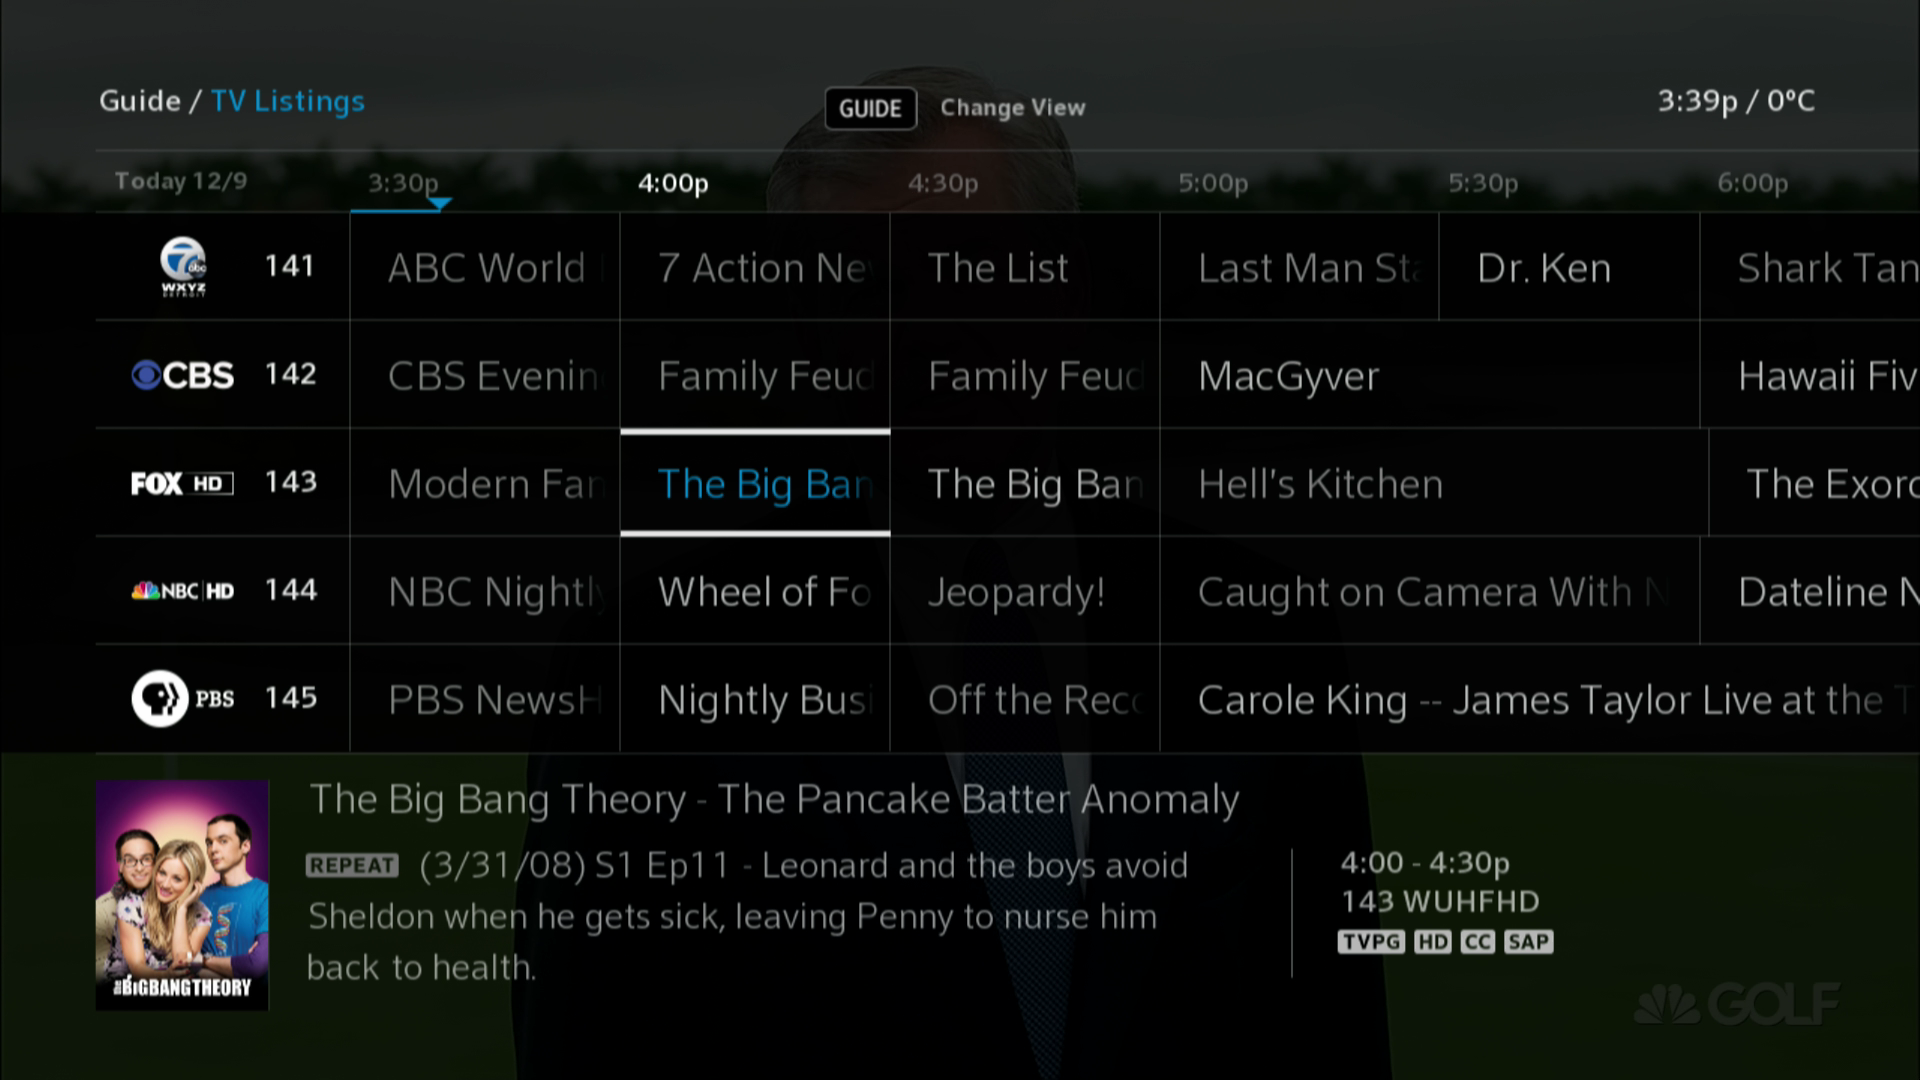 BlueSky TV Guide viewing a channel